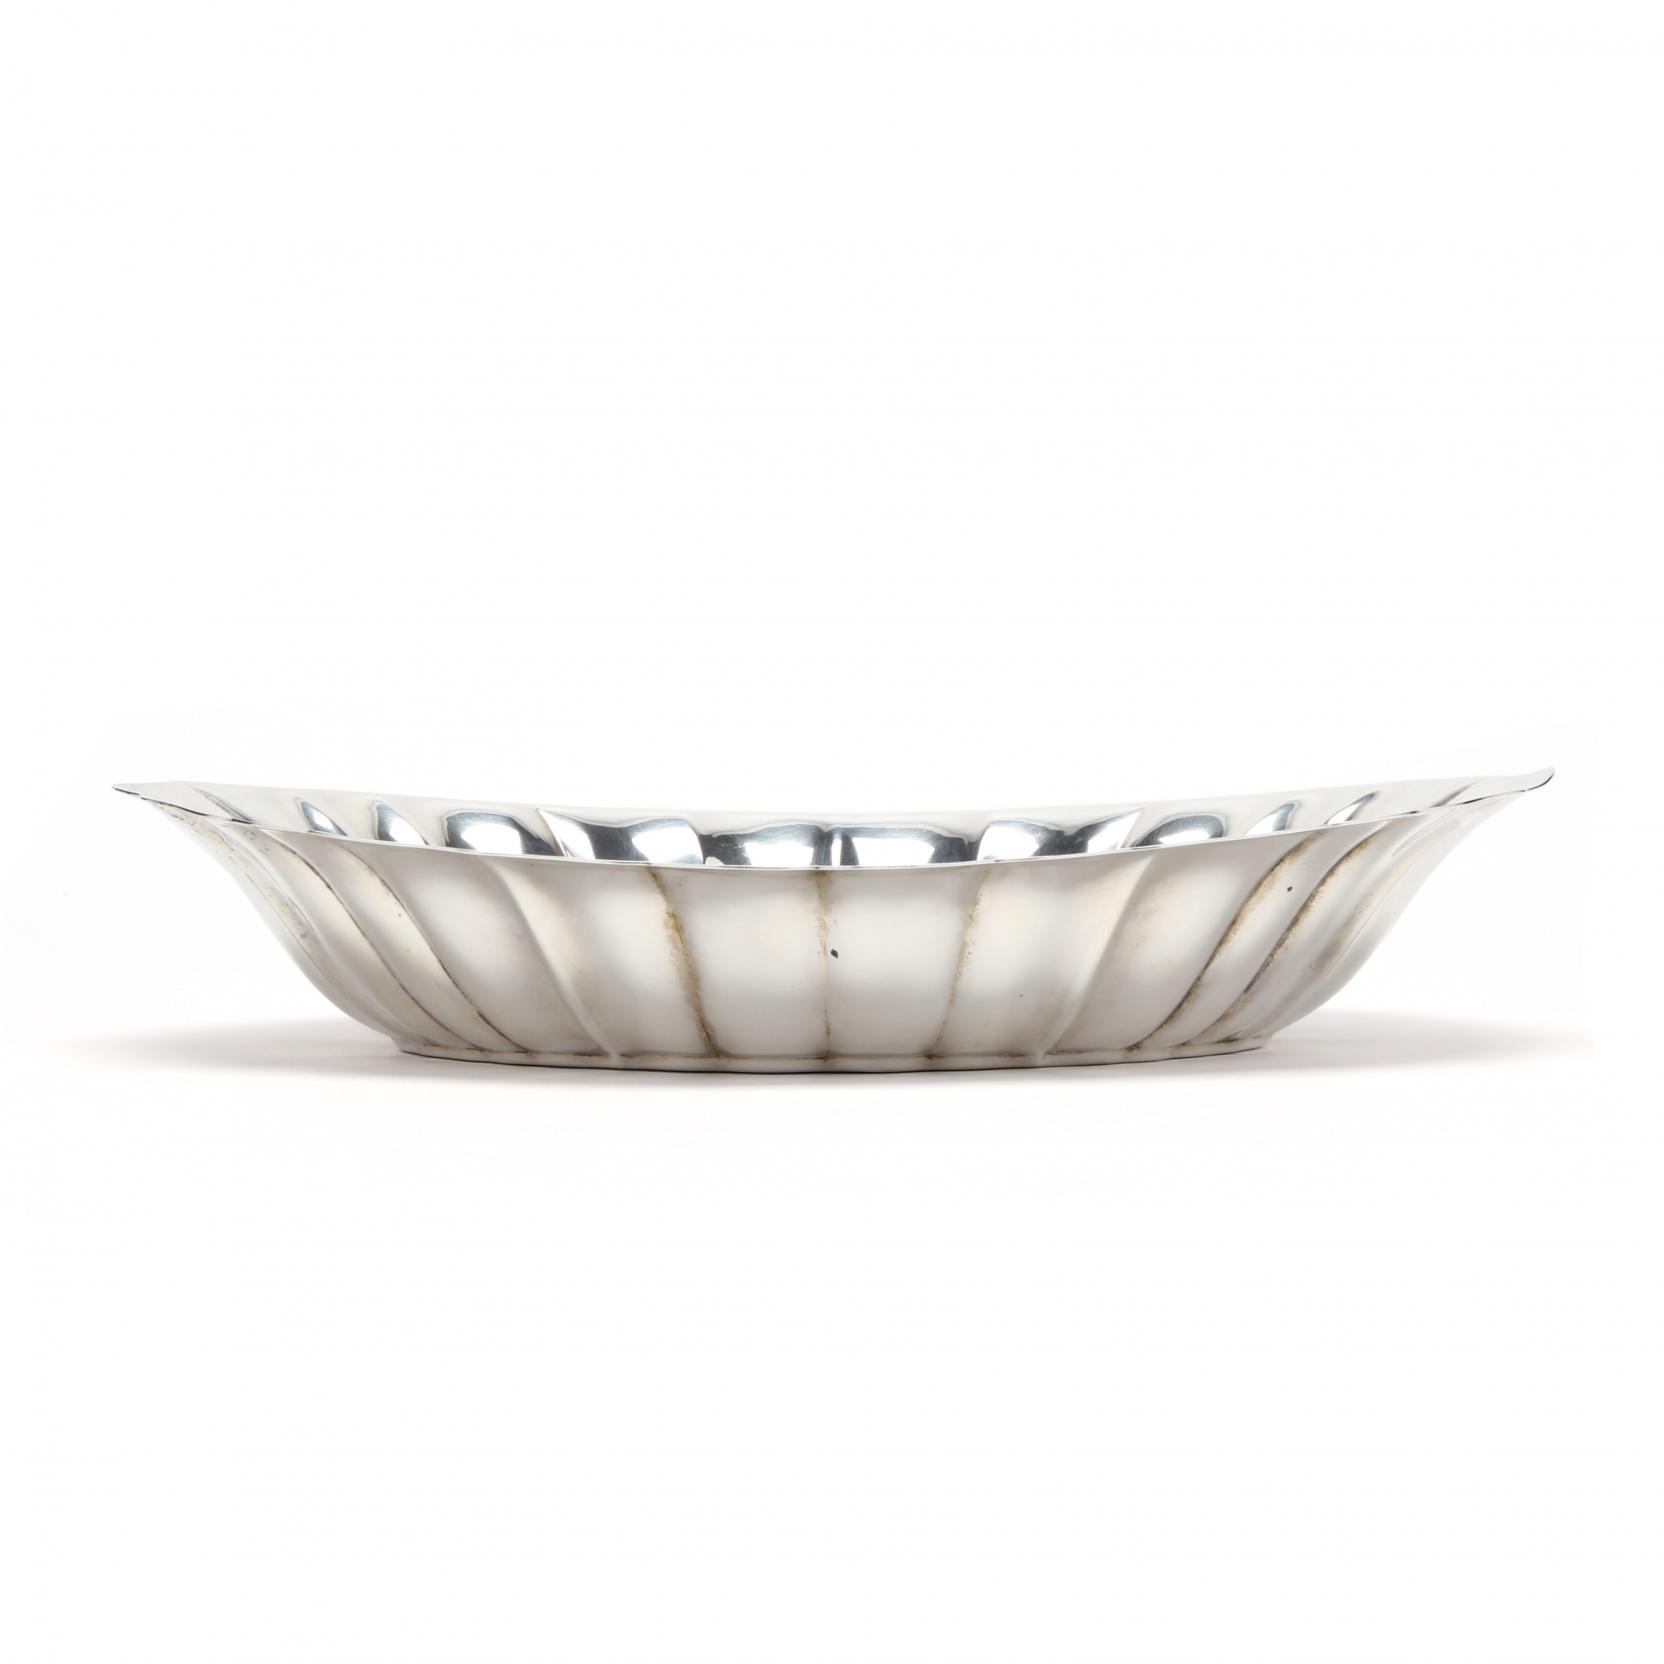 reed-barton-sterling-silver-vegetable-bowl